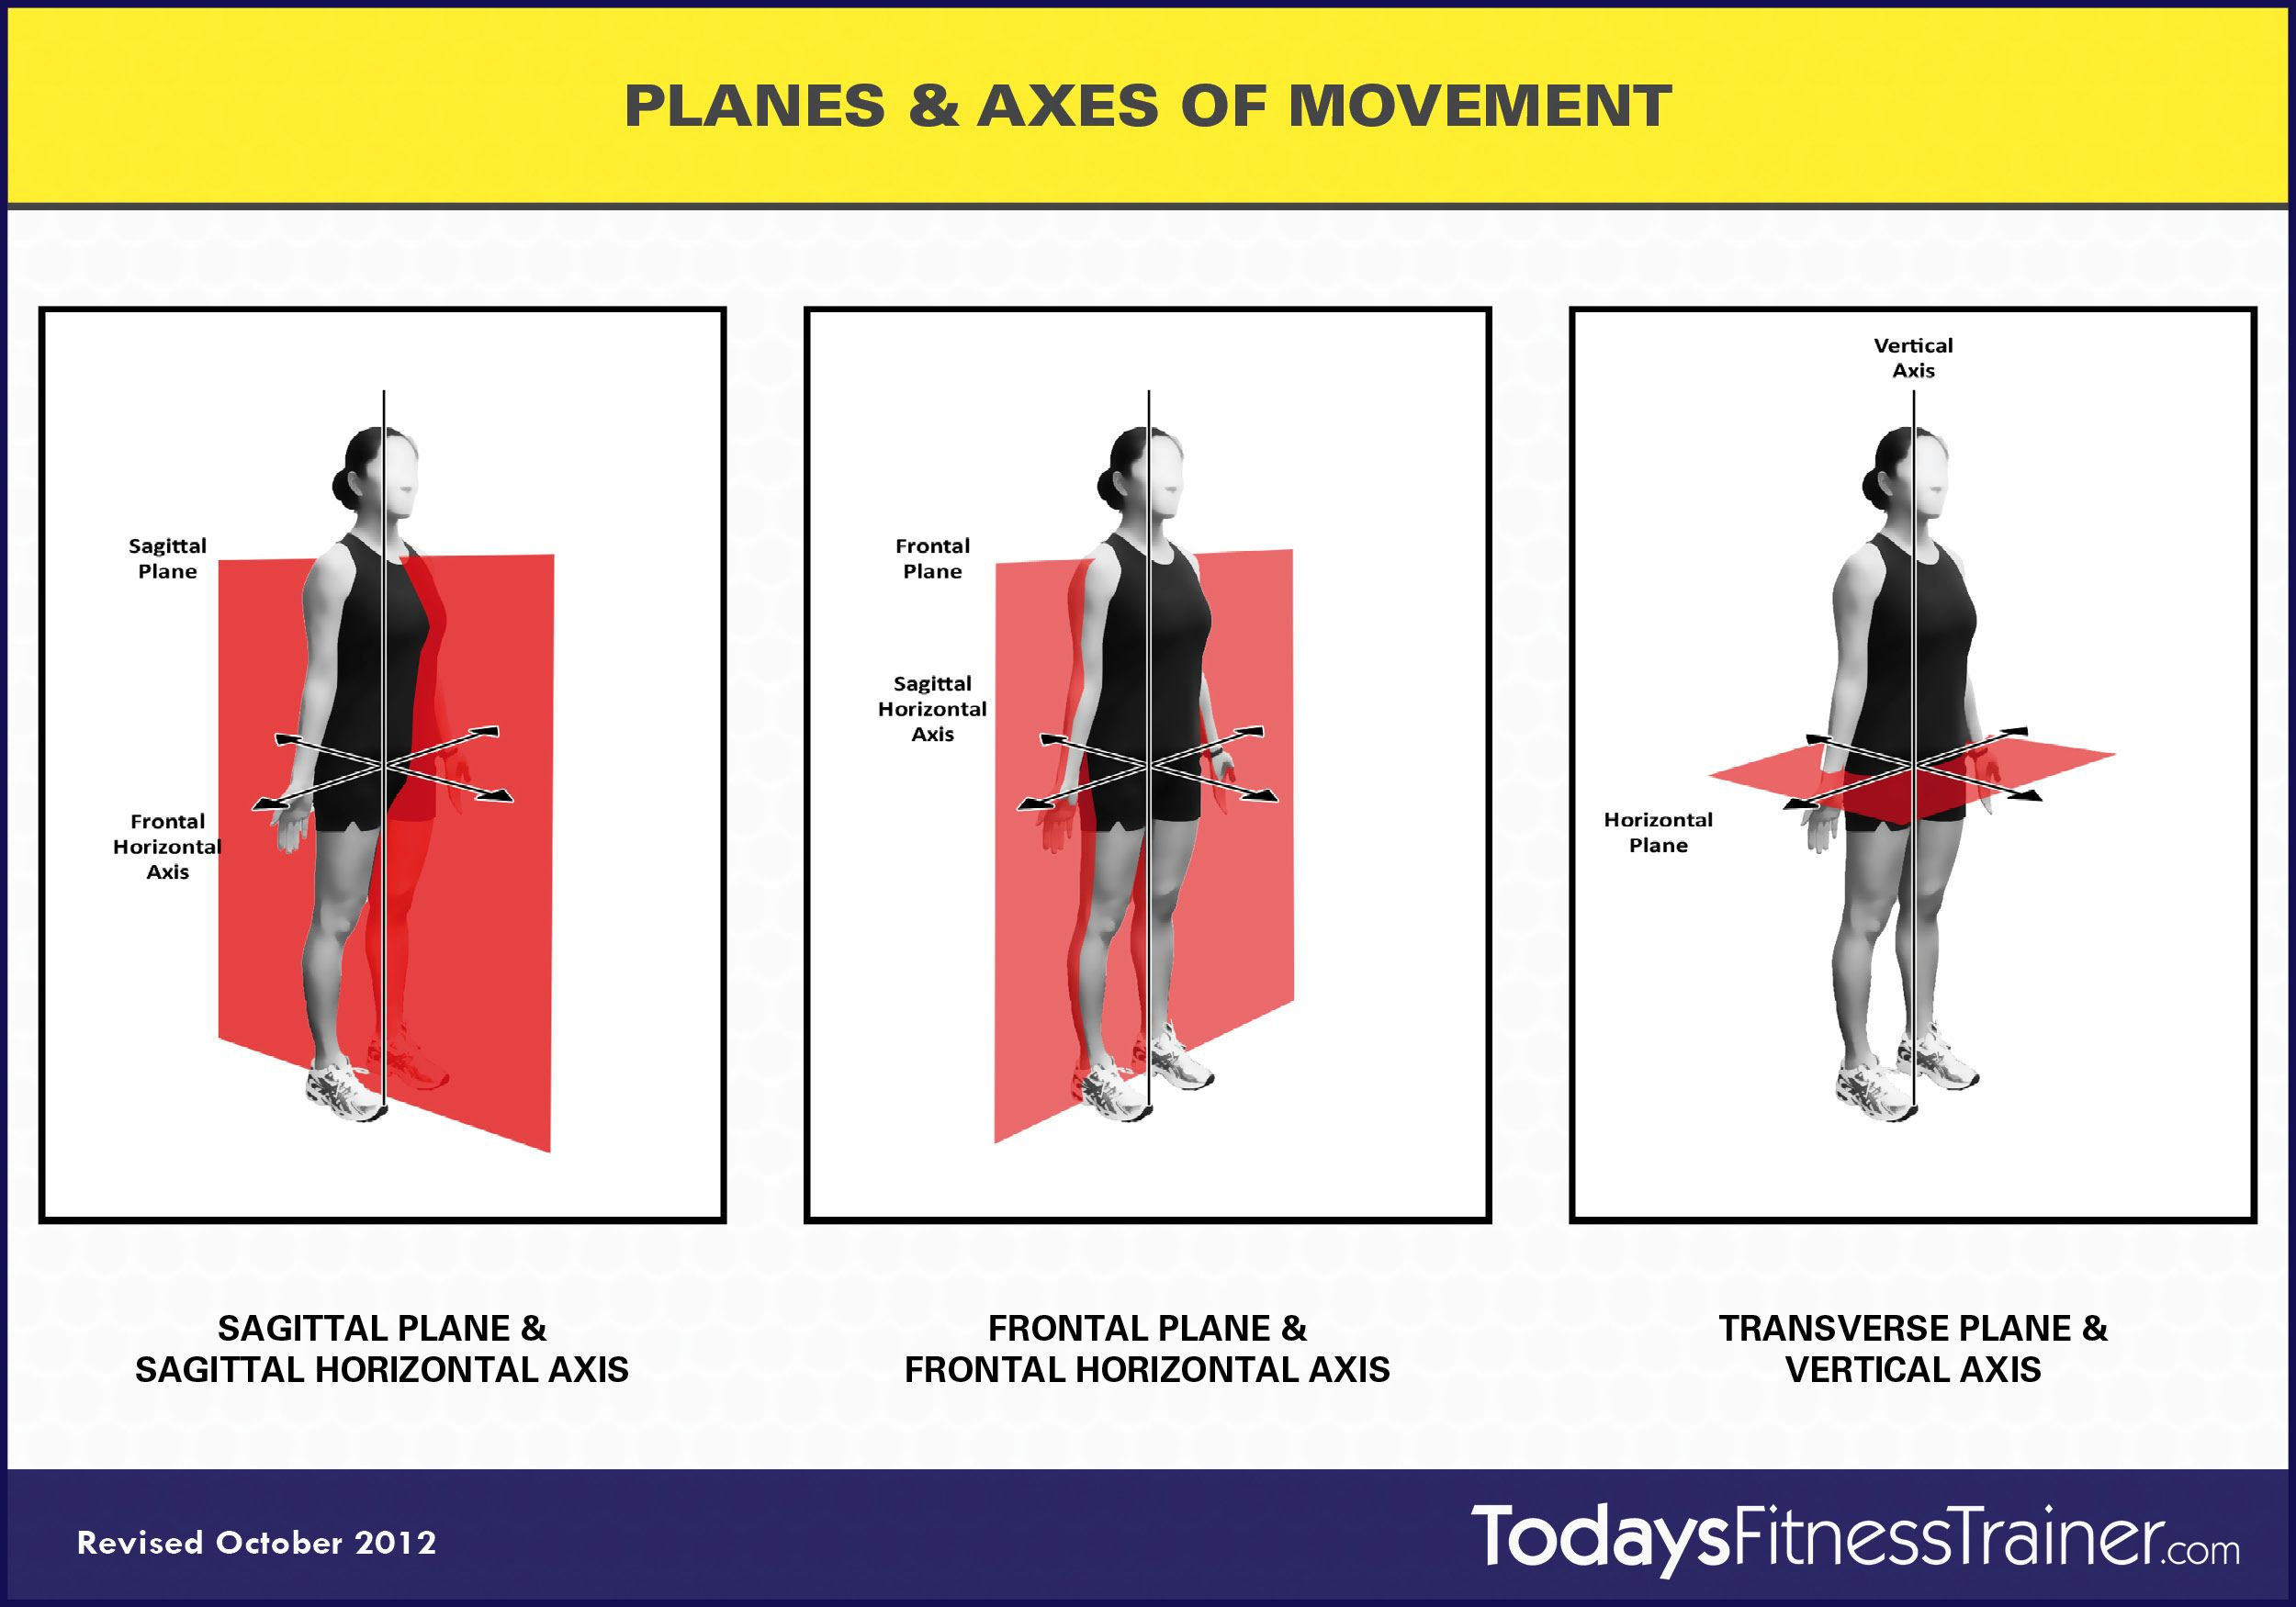 Anatomical Planes and Axis | Planes Axes of Movement 1024x716 ...